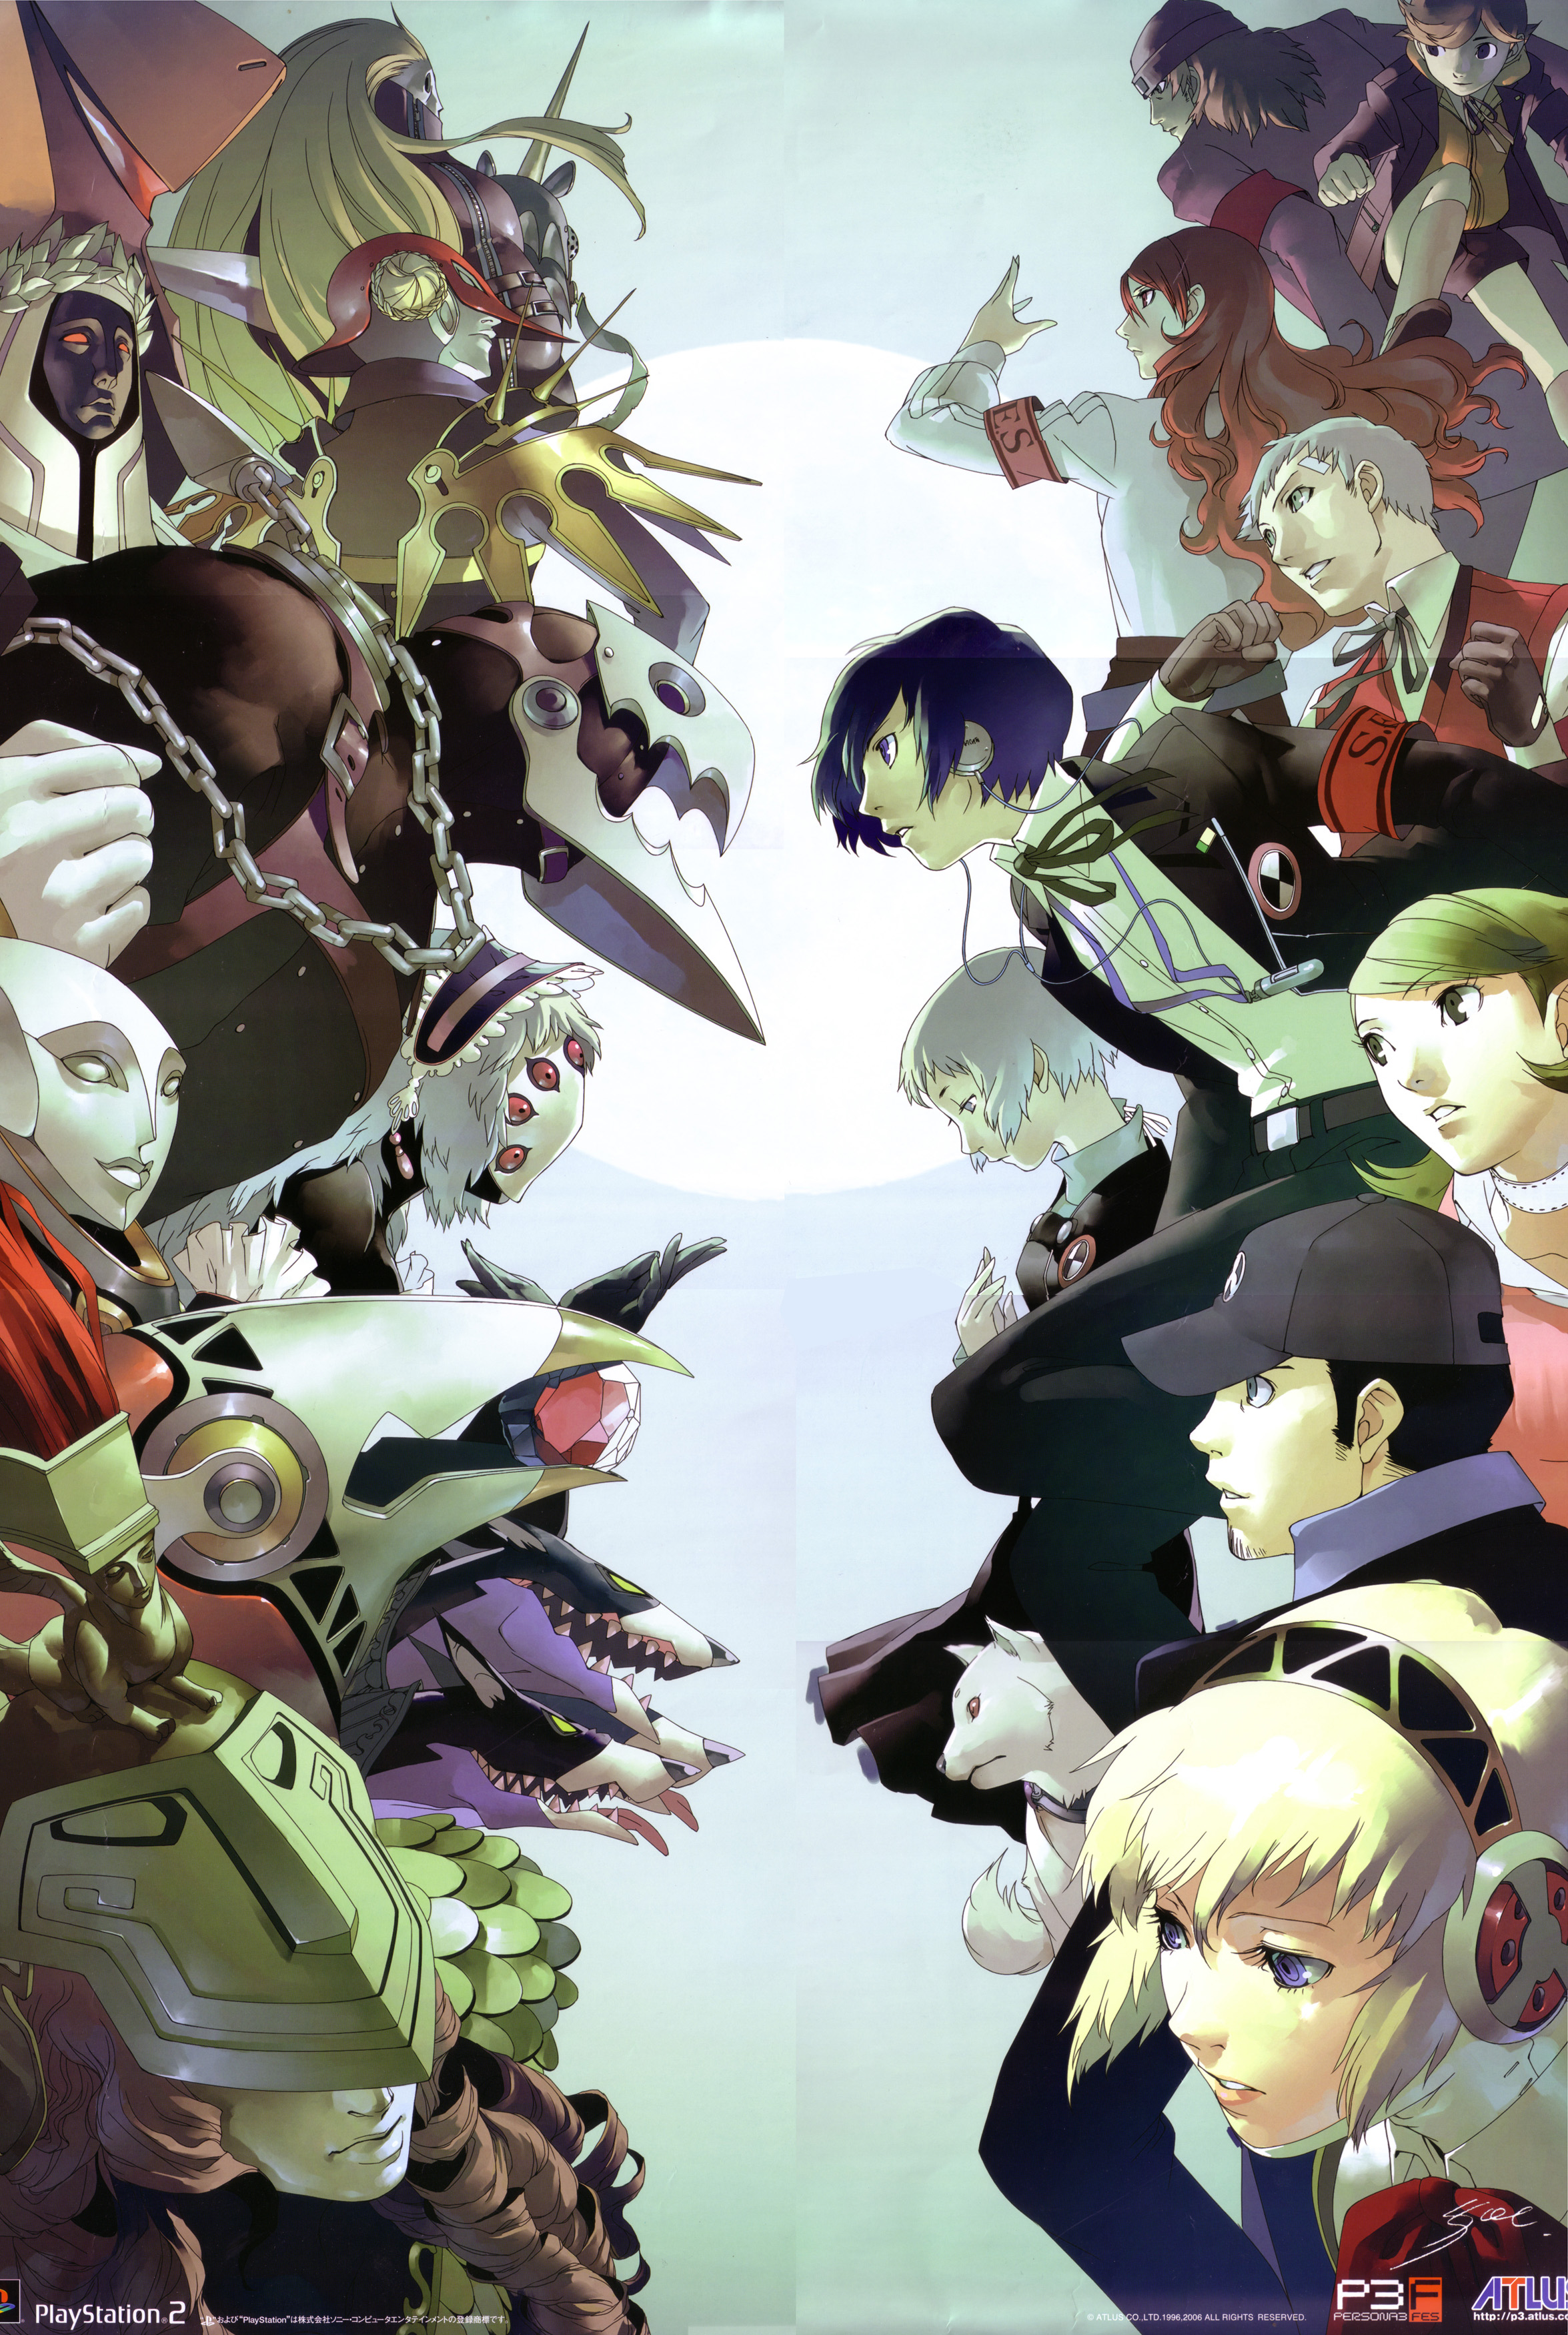 Persona 3 iphone 5 wallpaper -  Download Shin Megami Tensei Persona 3 Image